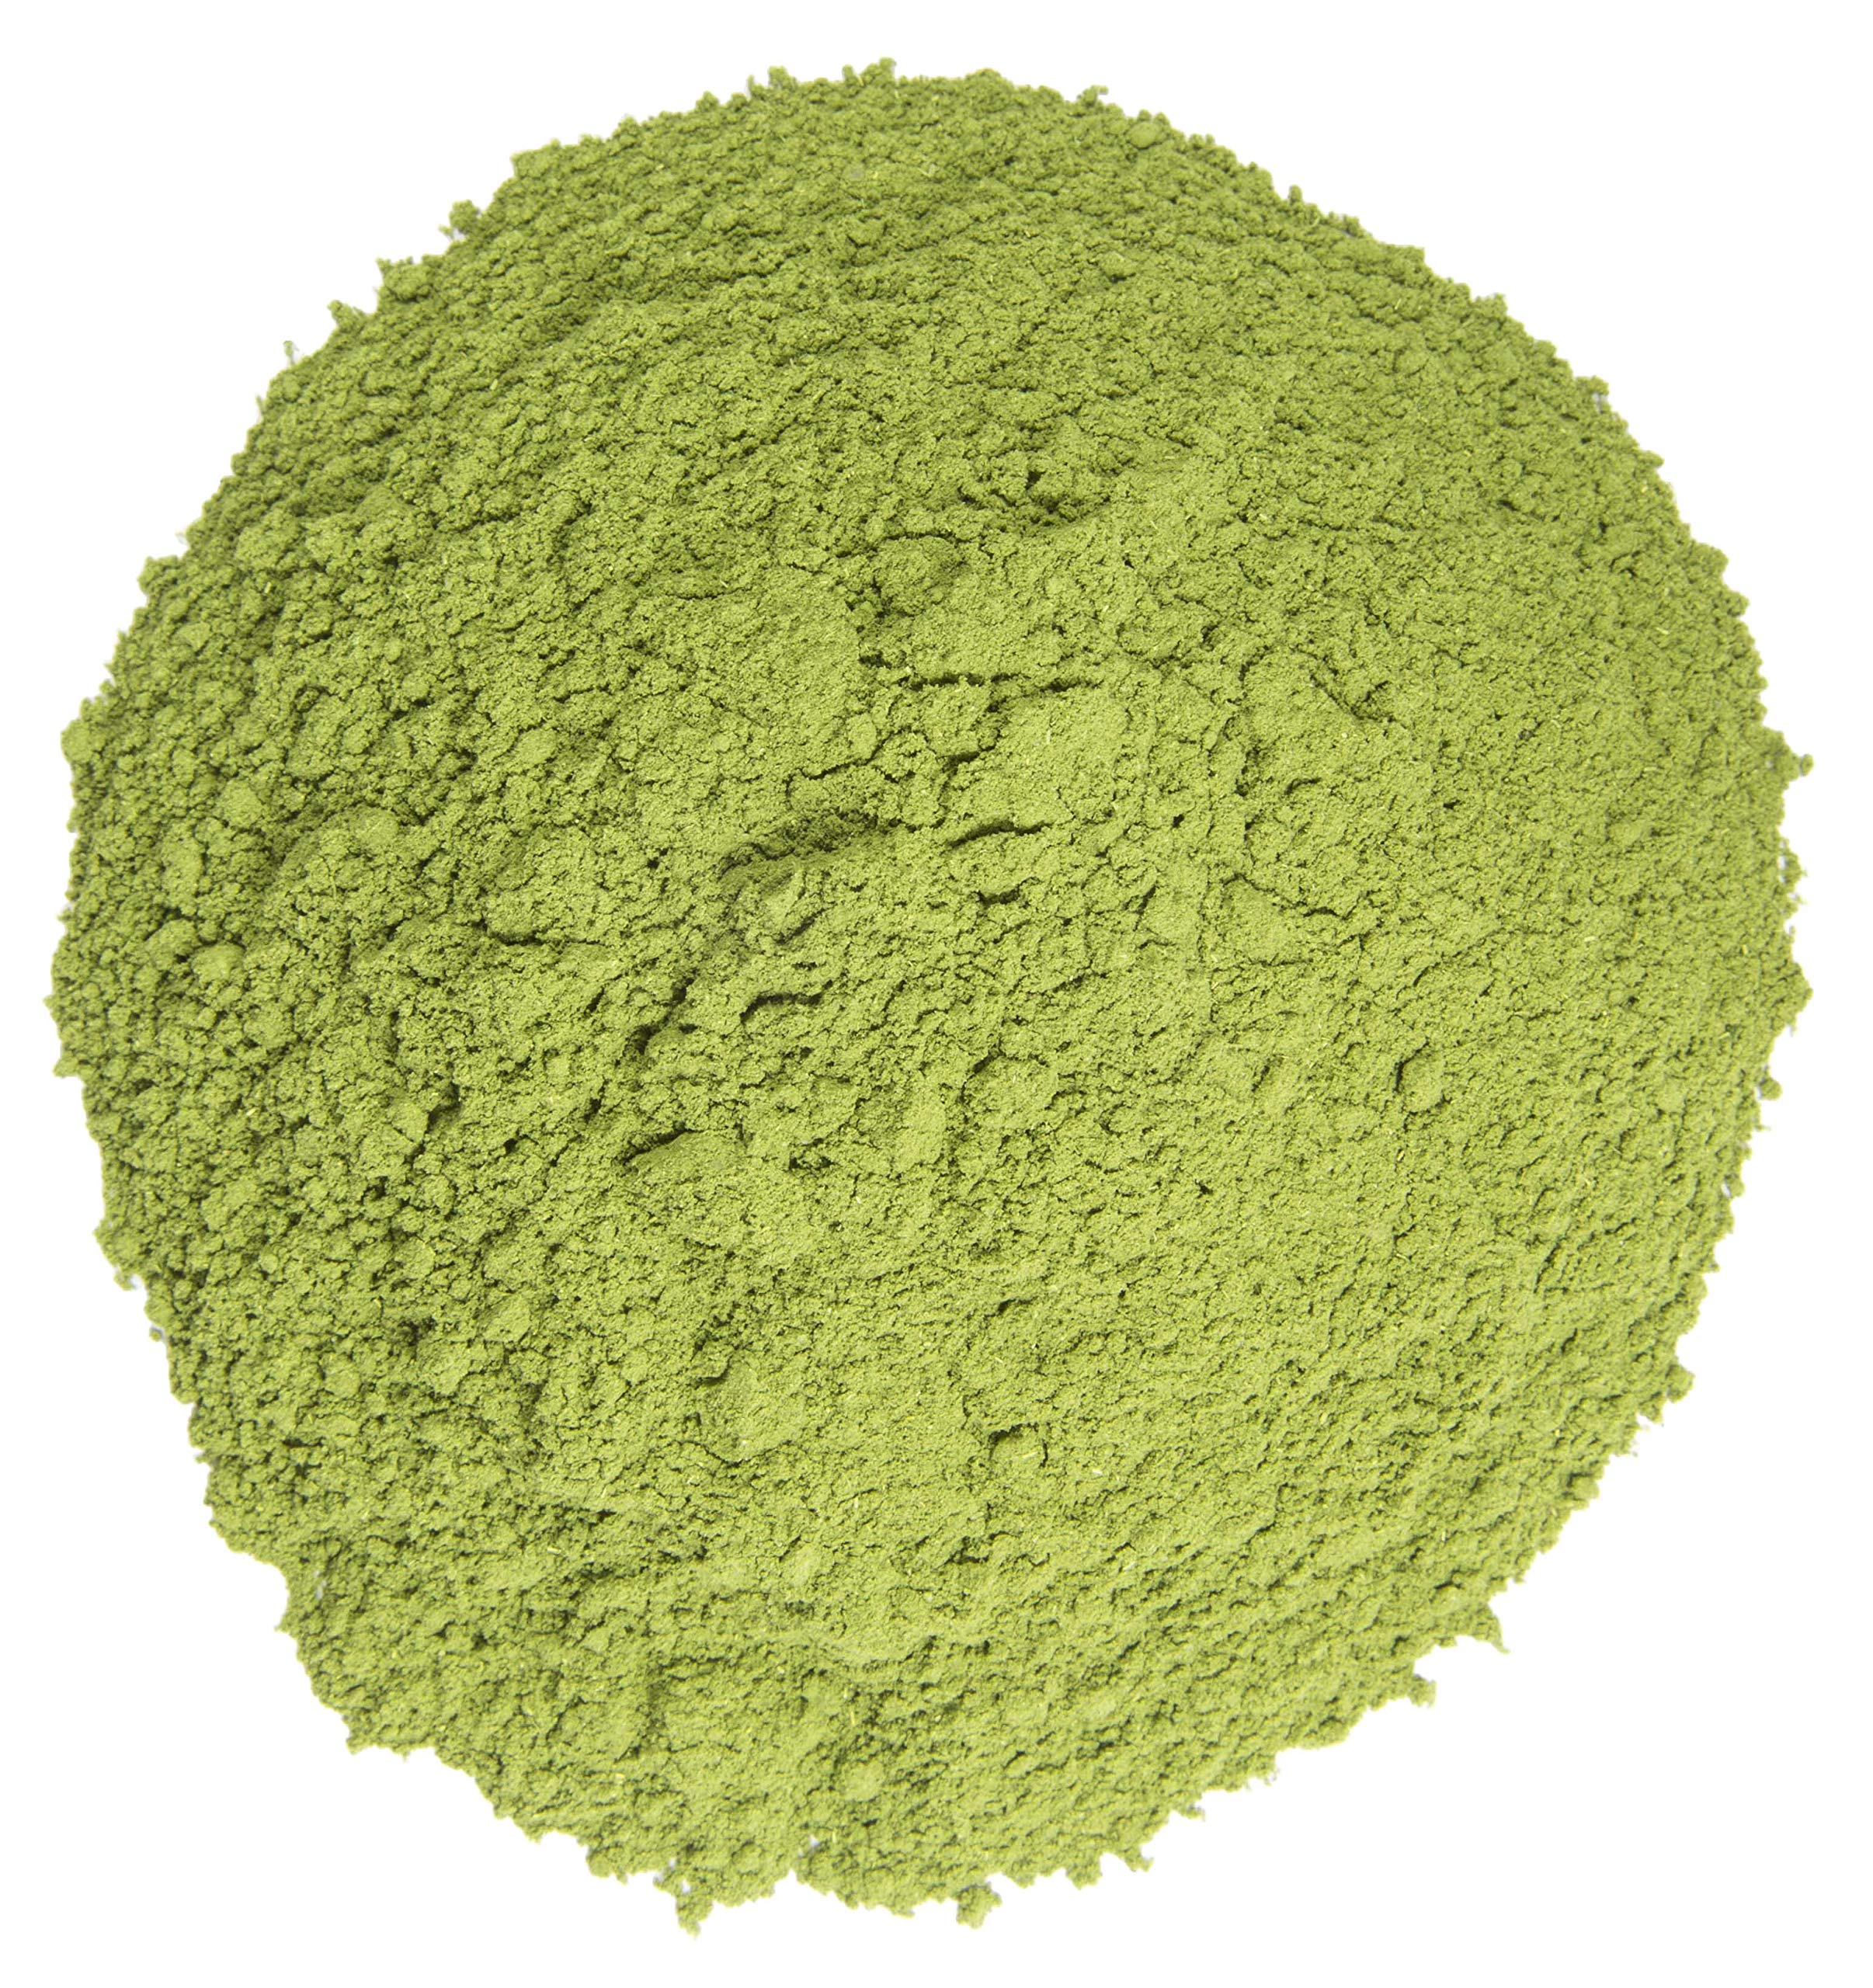 Ground Curry Leaves, Powder : Indian spice also used in Ayurvedic medicine (44oz.) by Burma Spice (Image #3)